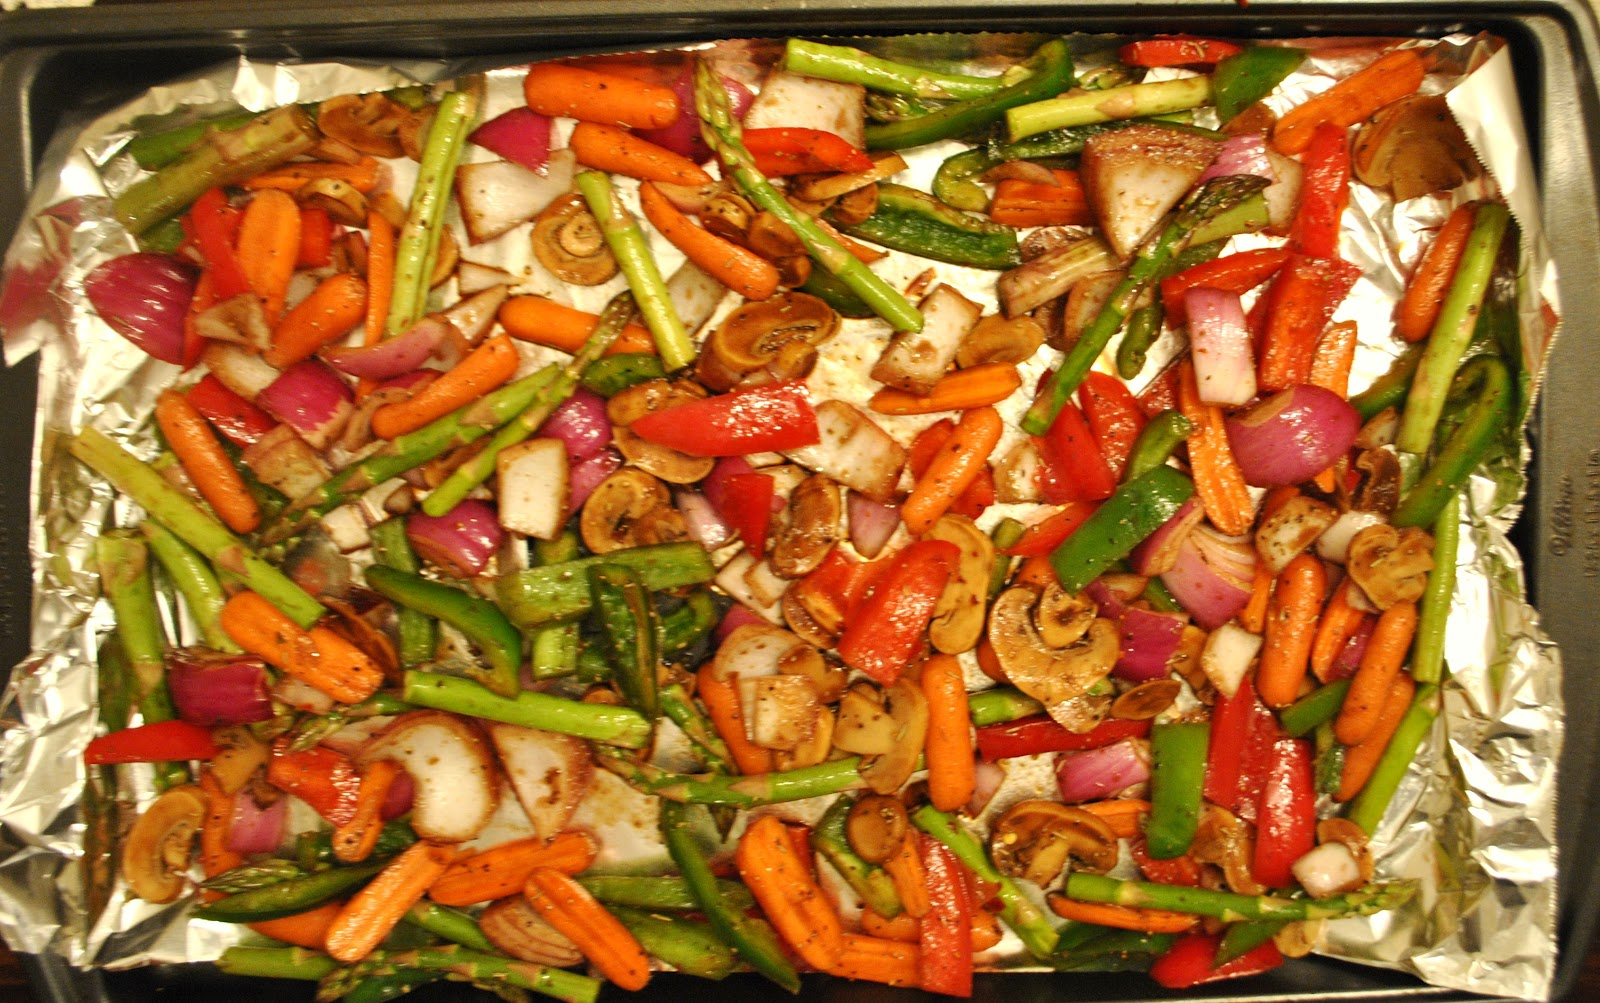 Roasted Chicken Thighs and Veggies